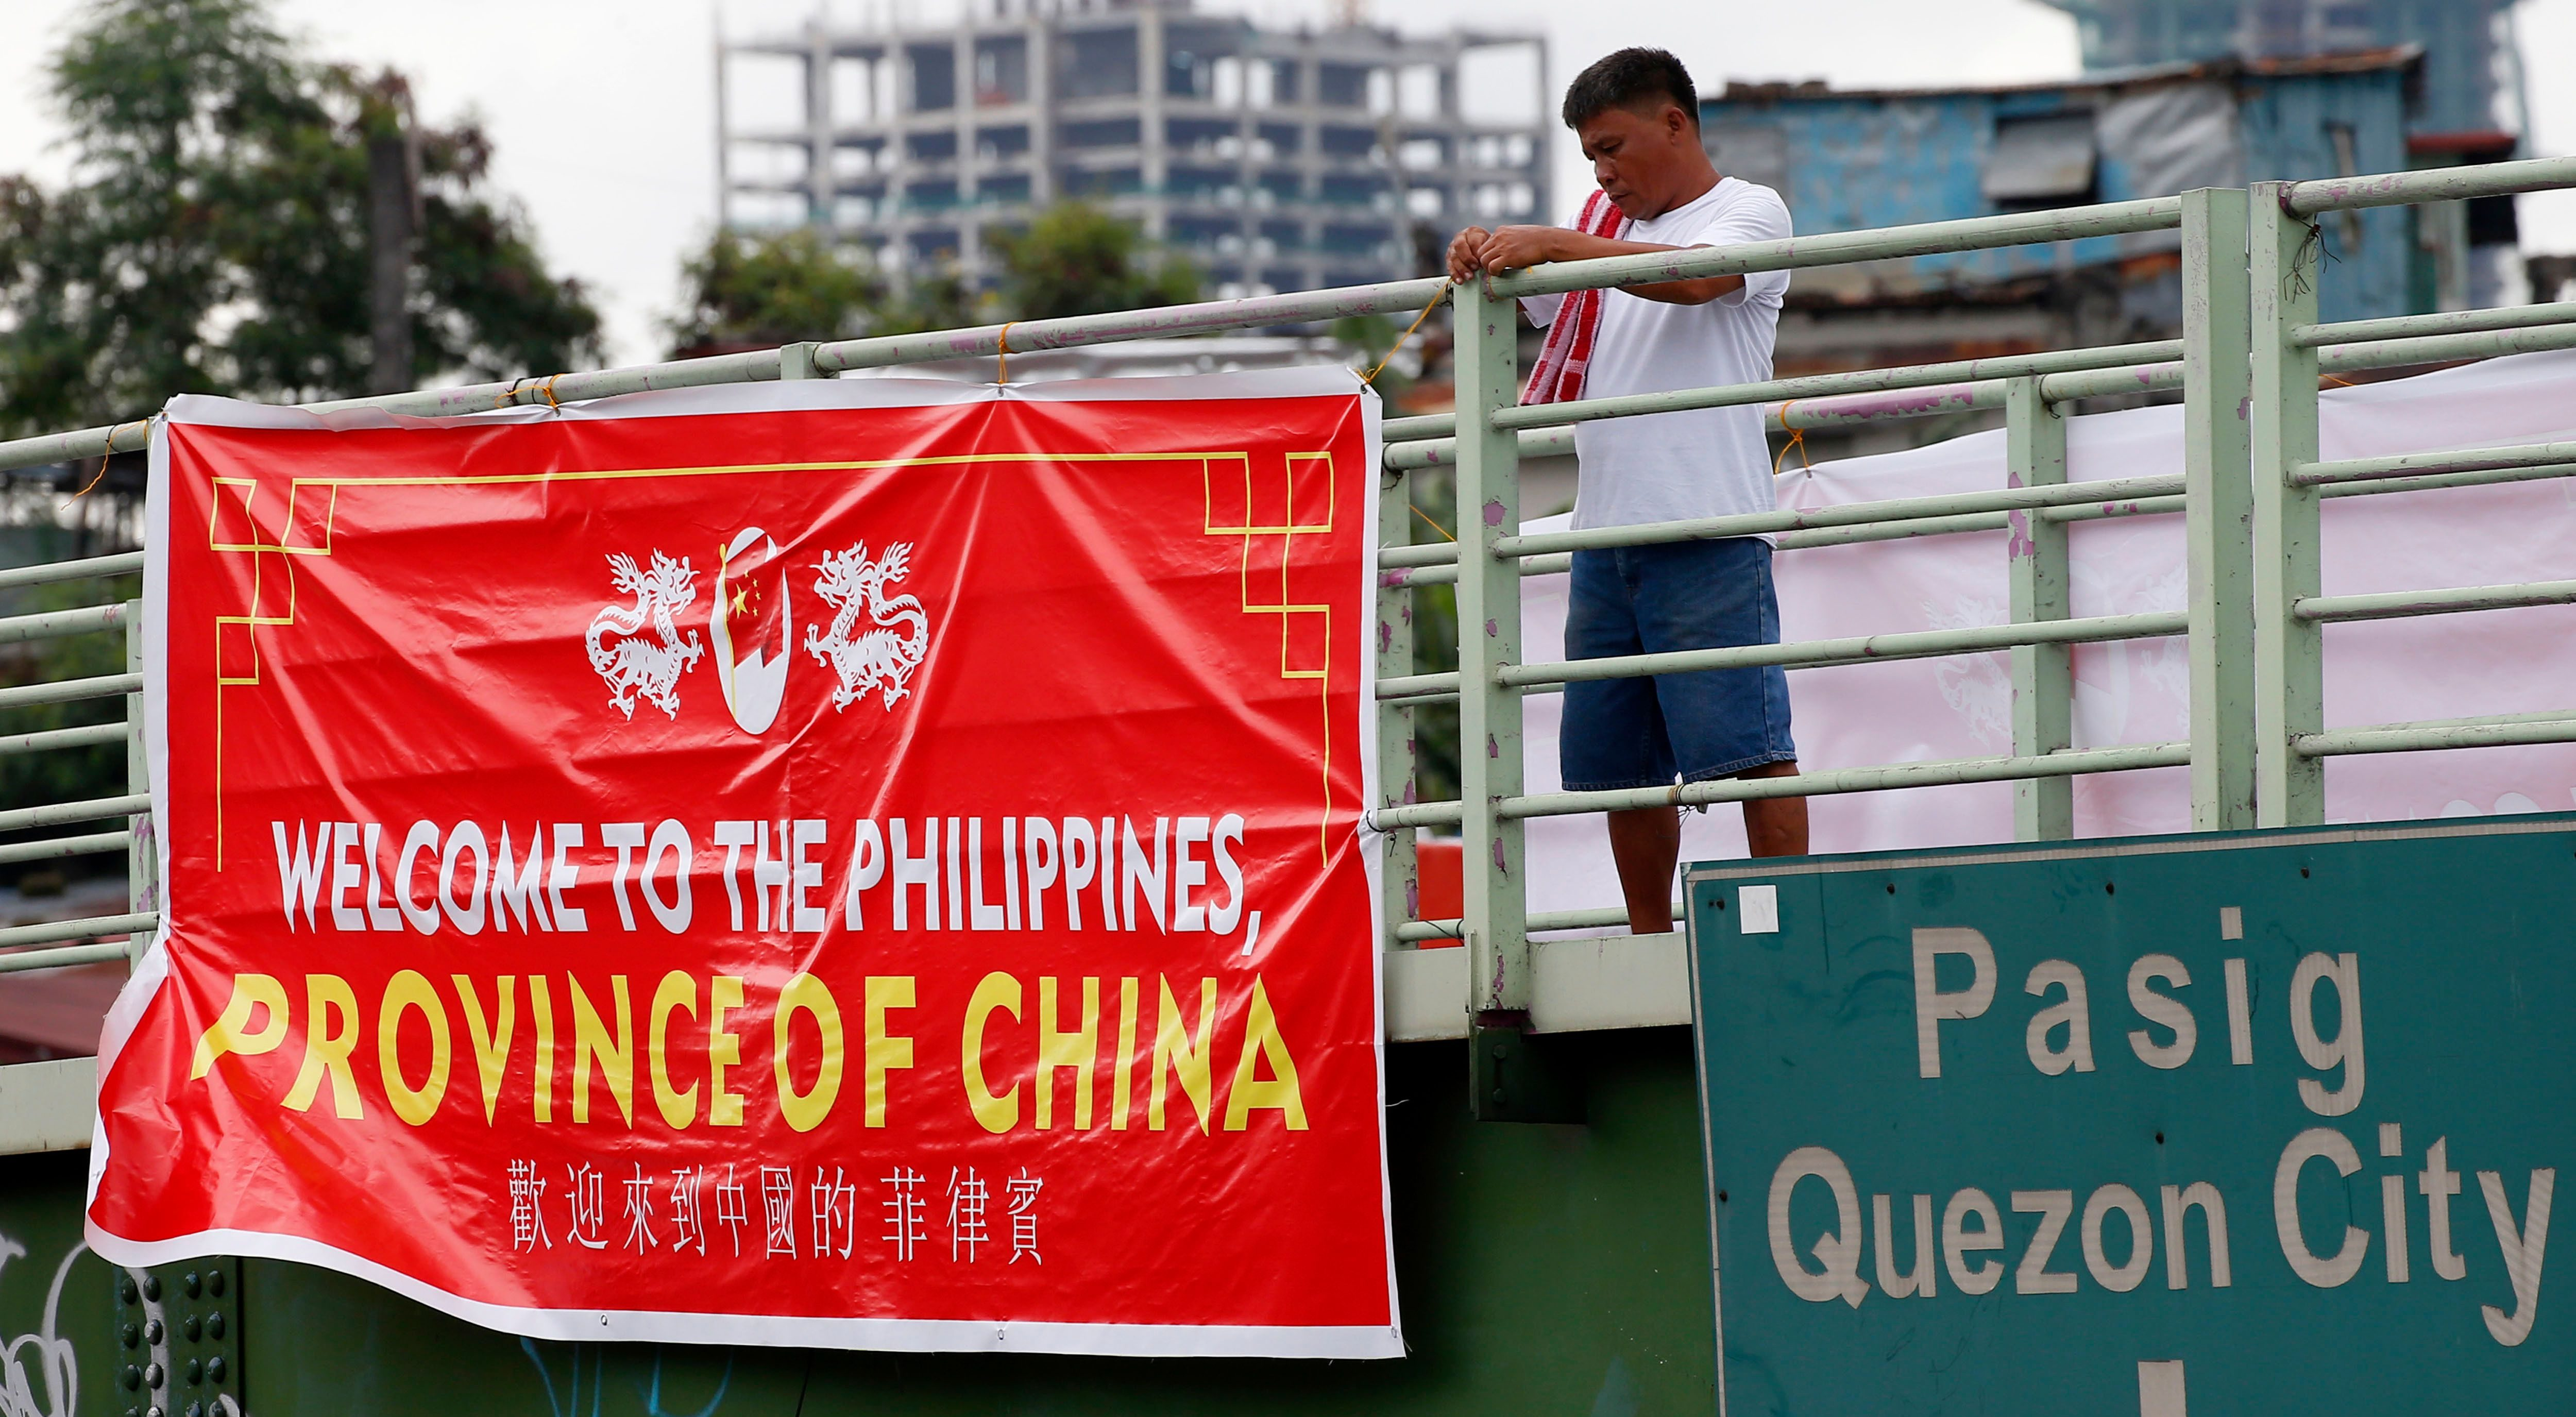 """A man tries to remove a tarpaulin banner with the words """"Welcome to the Philippines, Province of China"""" that was hung from an overpass Thursday, July 12, 2018, in Manila, Philippines. Similar banners have been seen in Manila Thursday which coincided with the second anniversary of the United Nations Permanent Court of Arbitration's decision upholding the Philippines' territorial rights on some islands, shoals, and reefs in the disputed Spratlys Group of islands in the South China Sea. The decision was shelved by President Rodrigo Duterte and wa   s never recognized by China."""